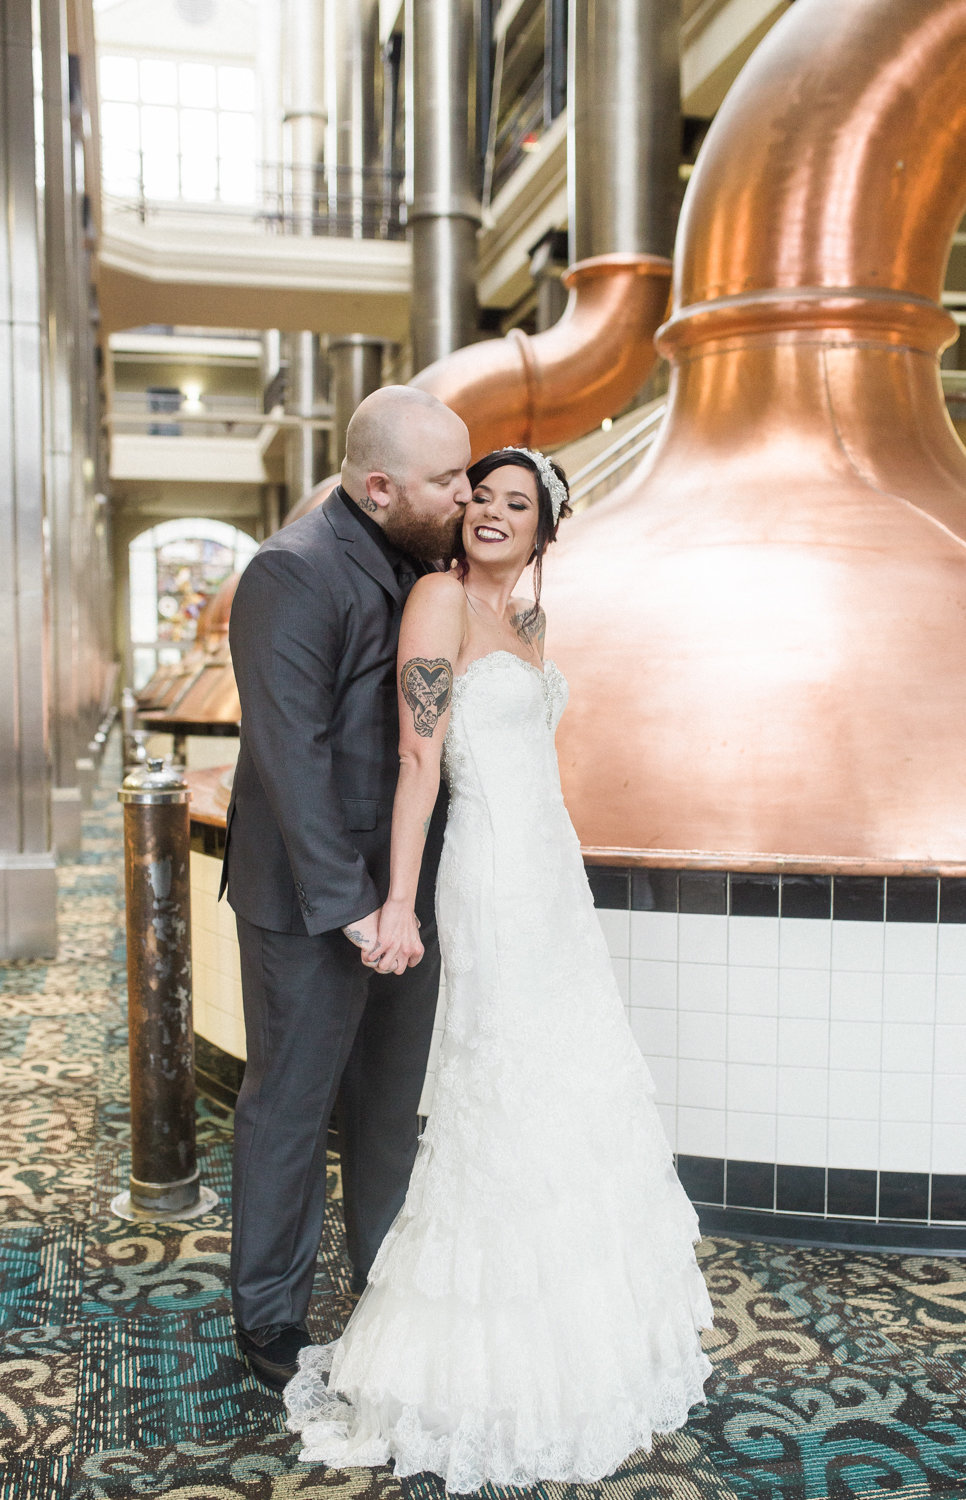 austin_milwaukee_wedding_photographer_fine_art_bride-101